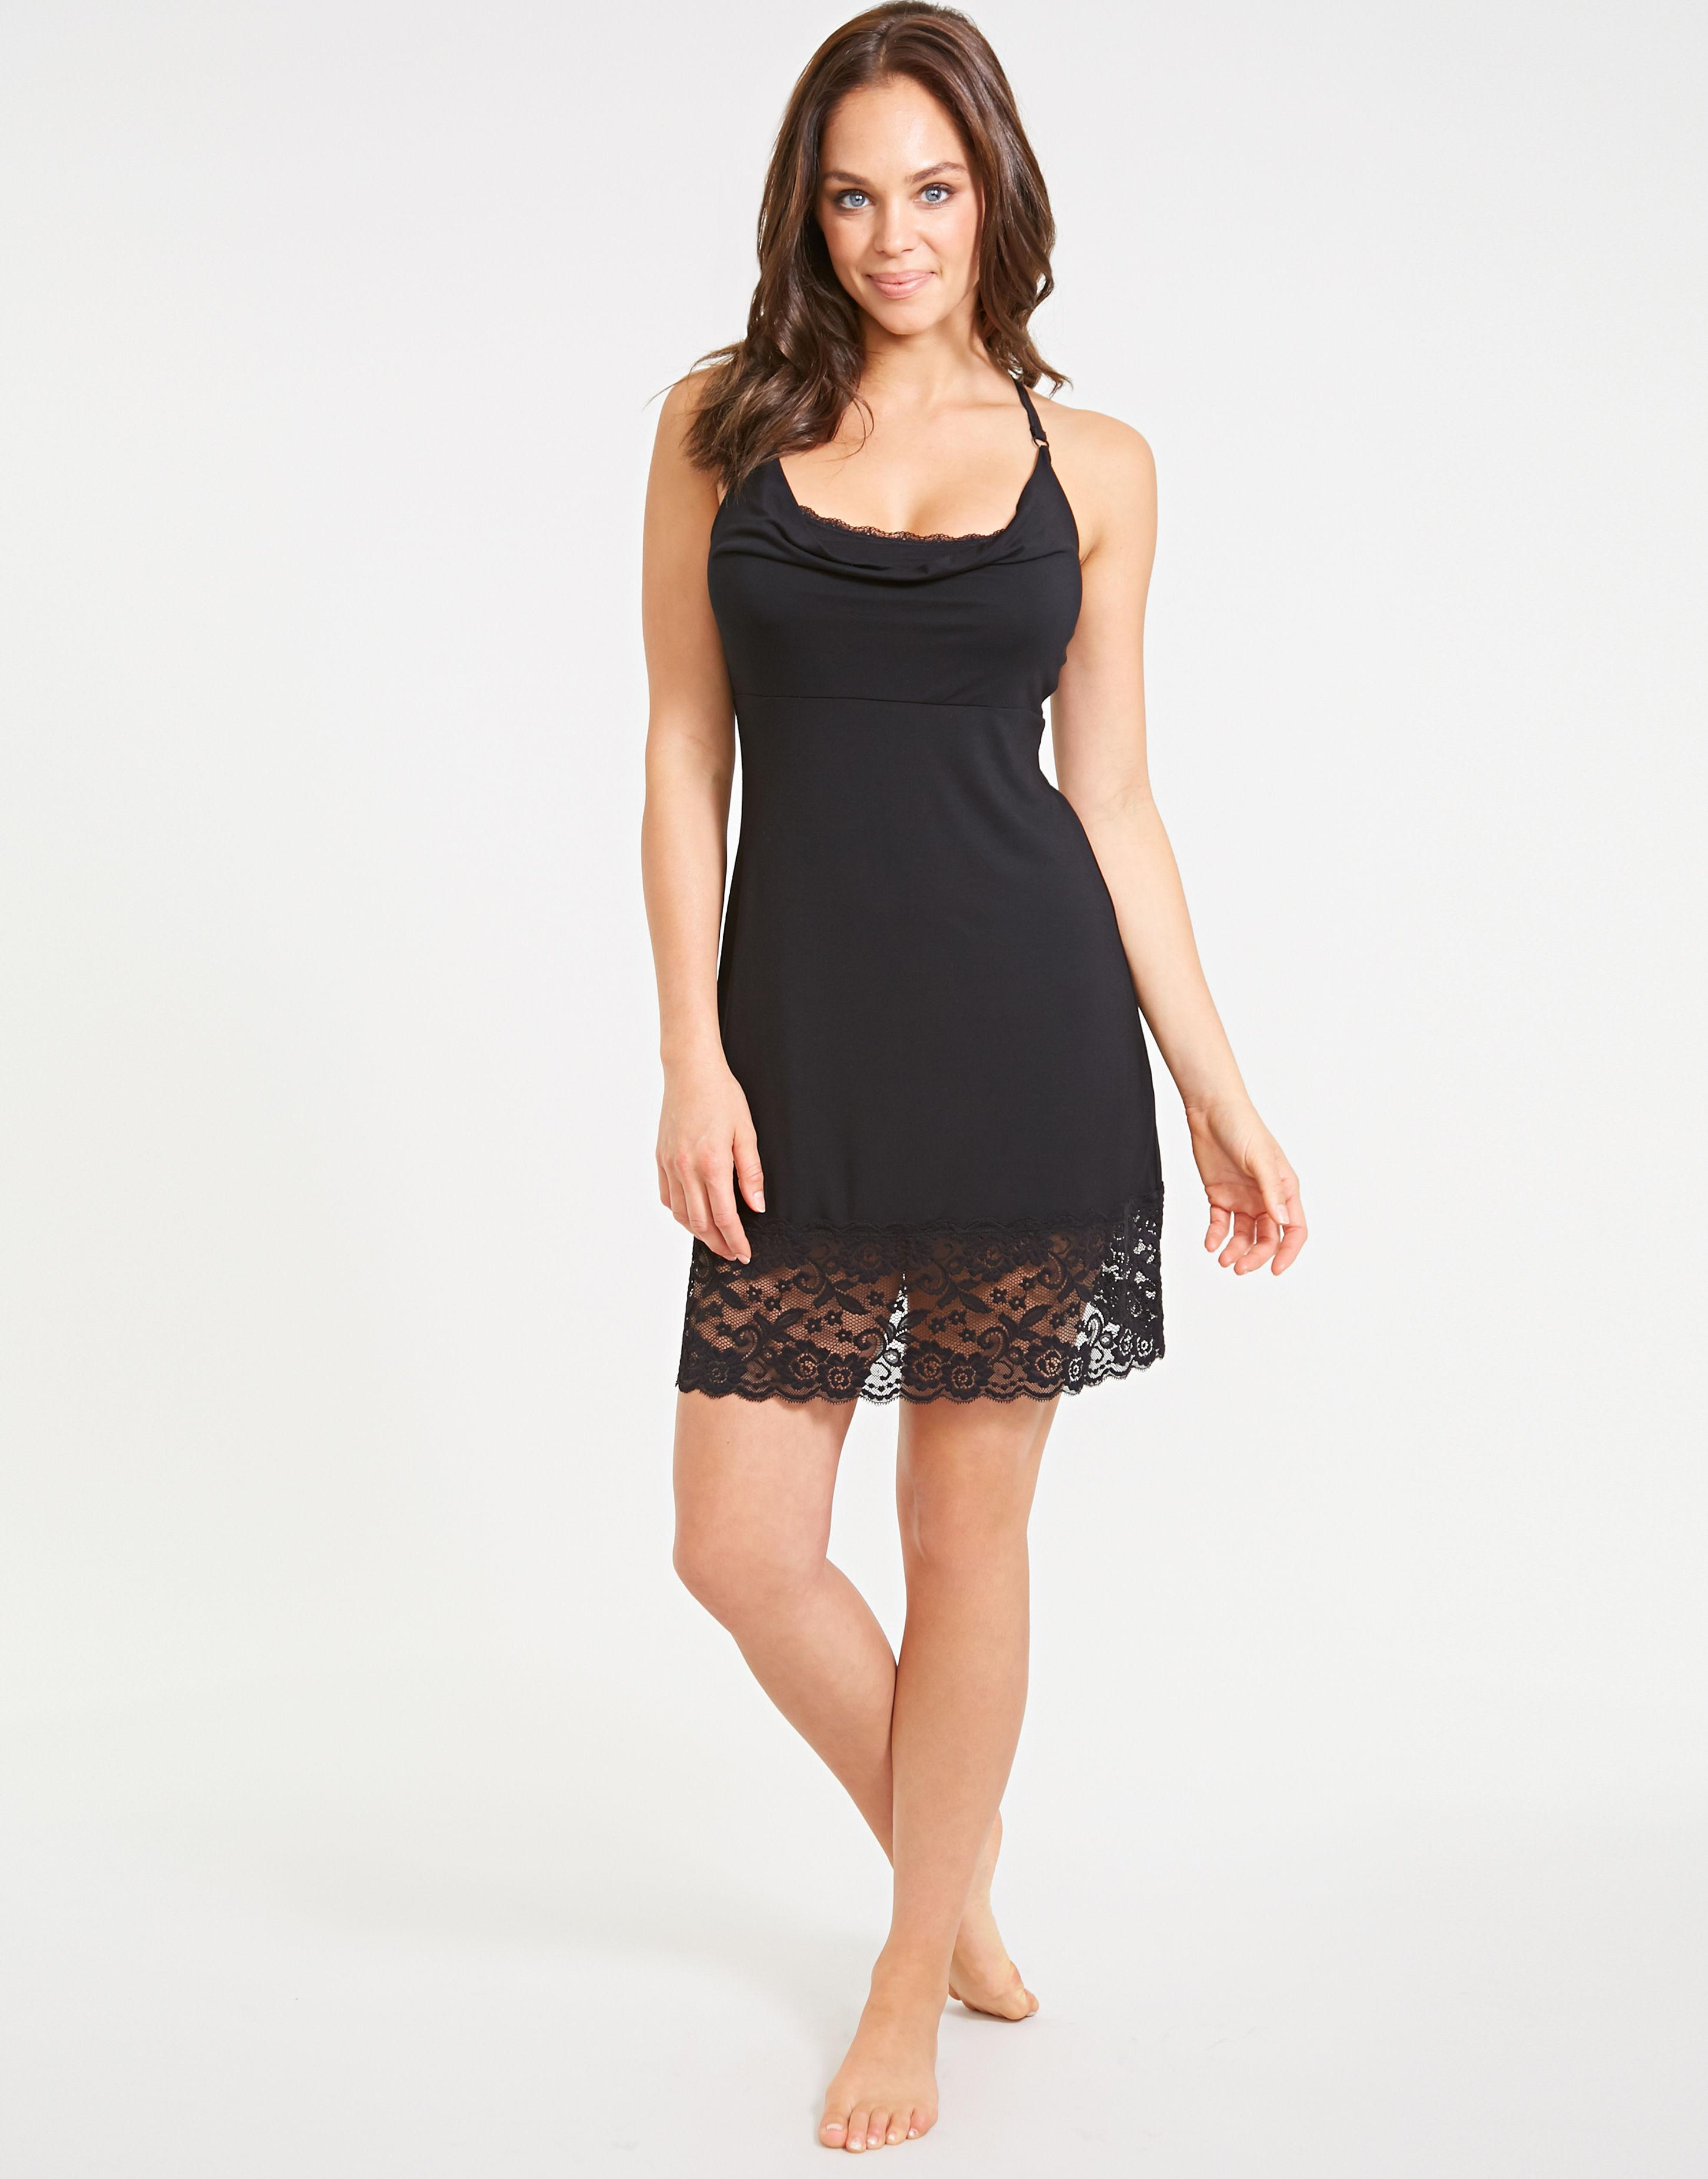 567a8c26b5 Figleaves Eliza Lace Drape Hidden Support Chemise in Black - Lyst